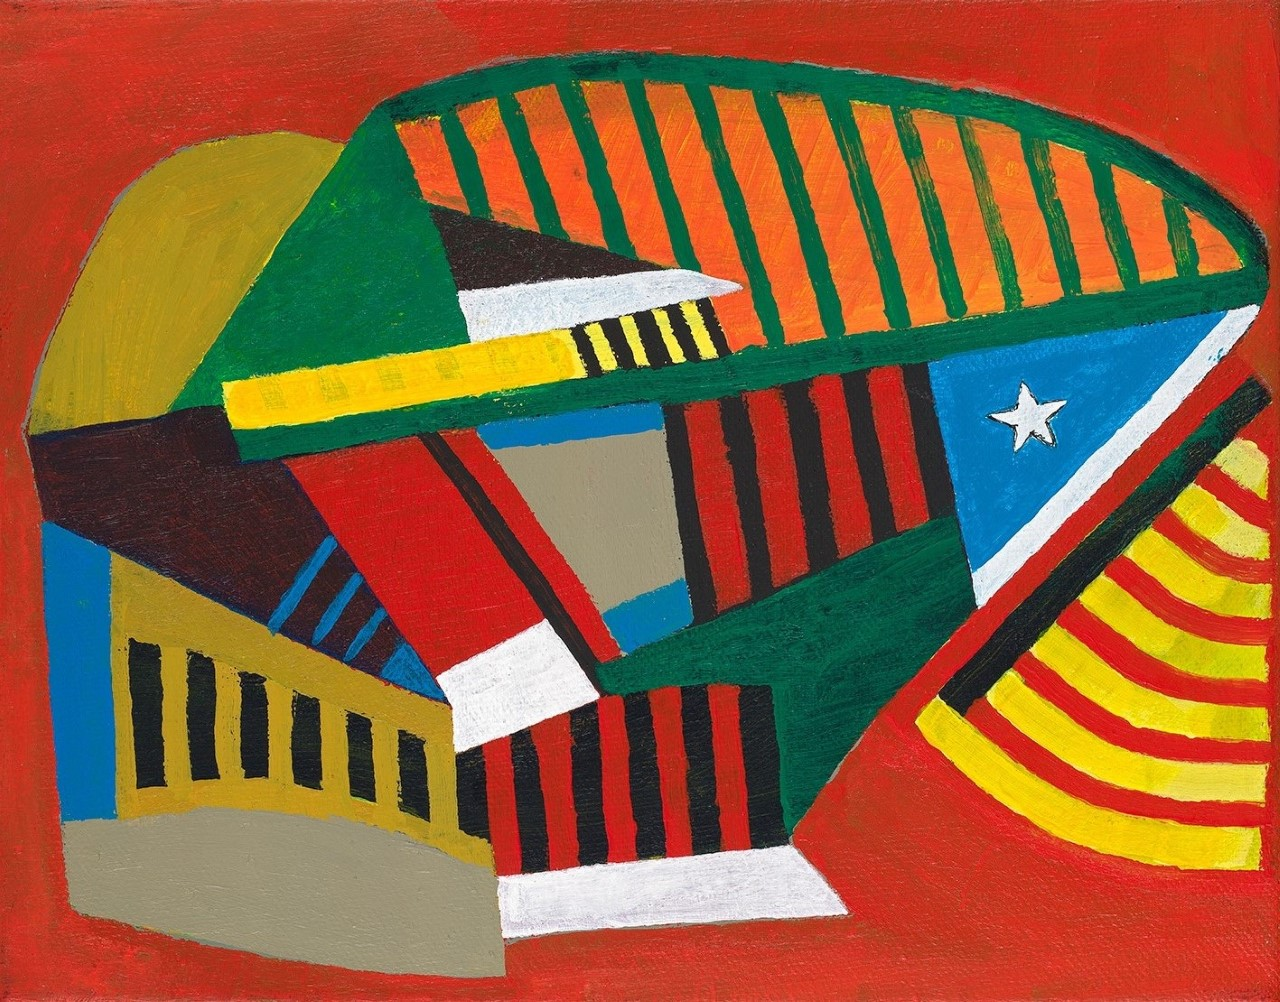 Homage to Catalonia by Douglas G.McKechnie